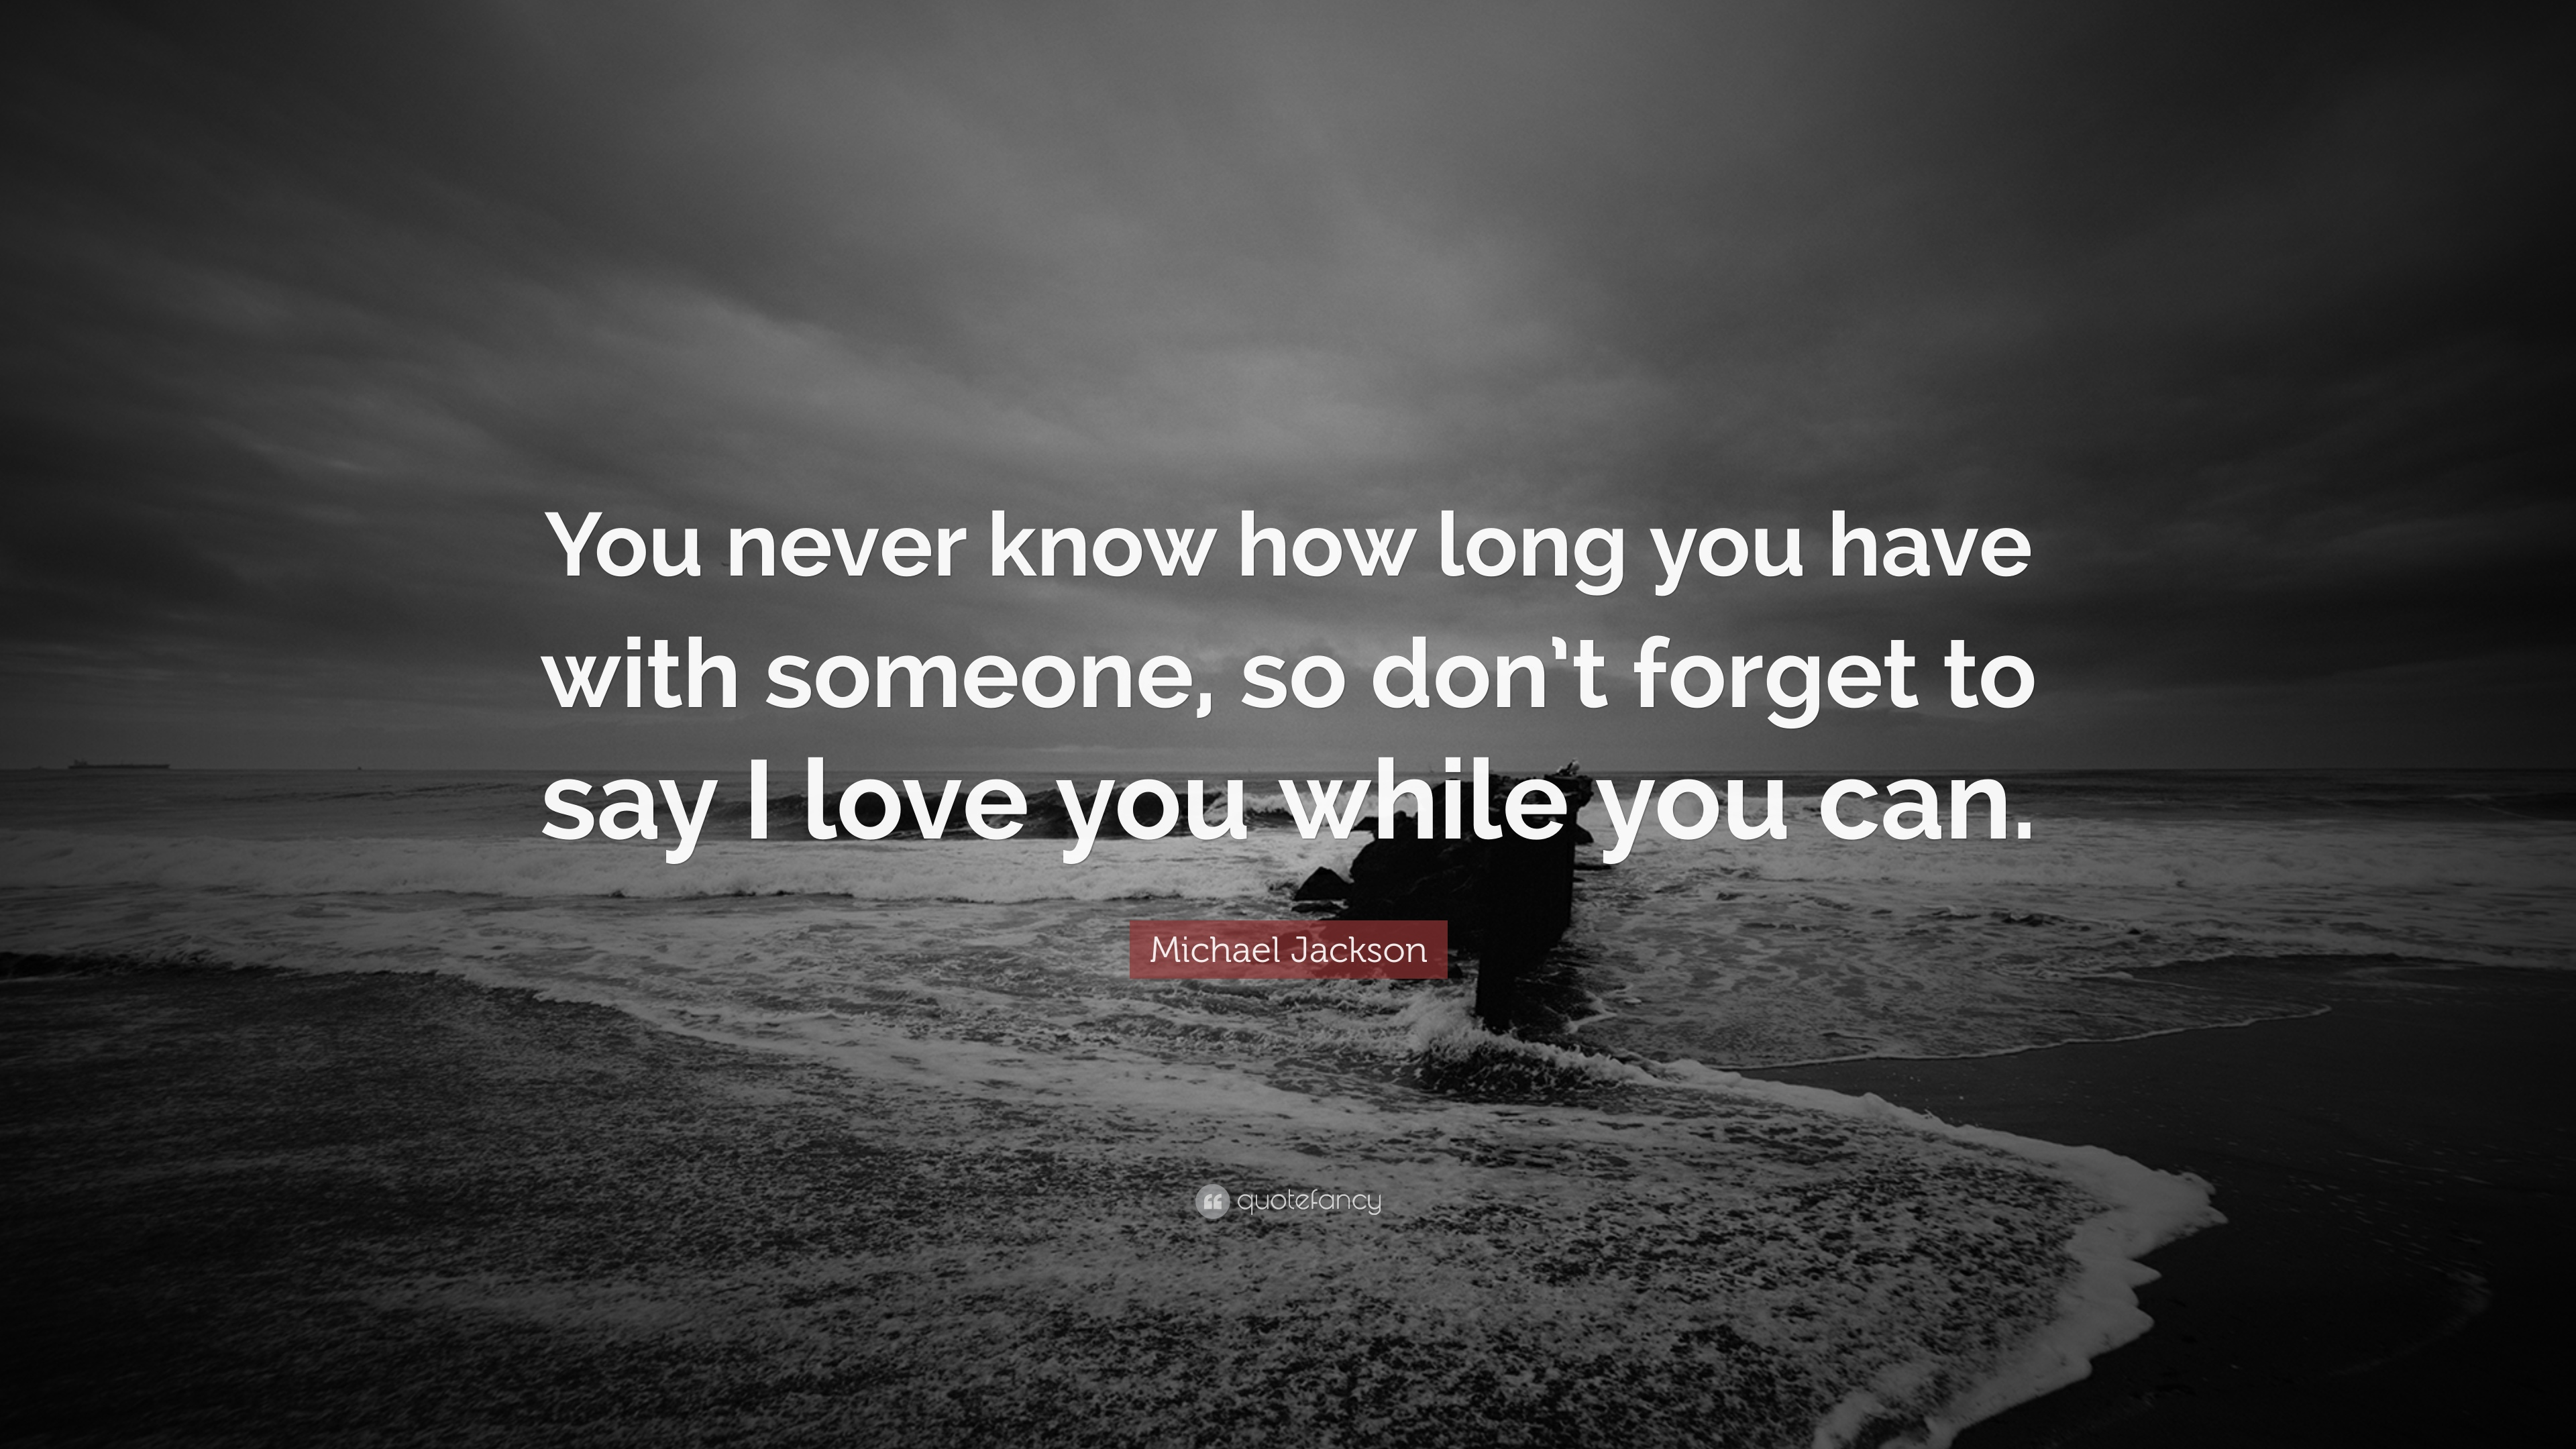 Michael Jackson Quote: U201cYou Never Know How Long You Have With Someone, So